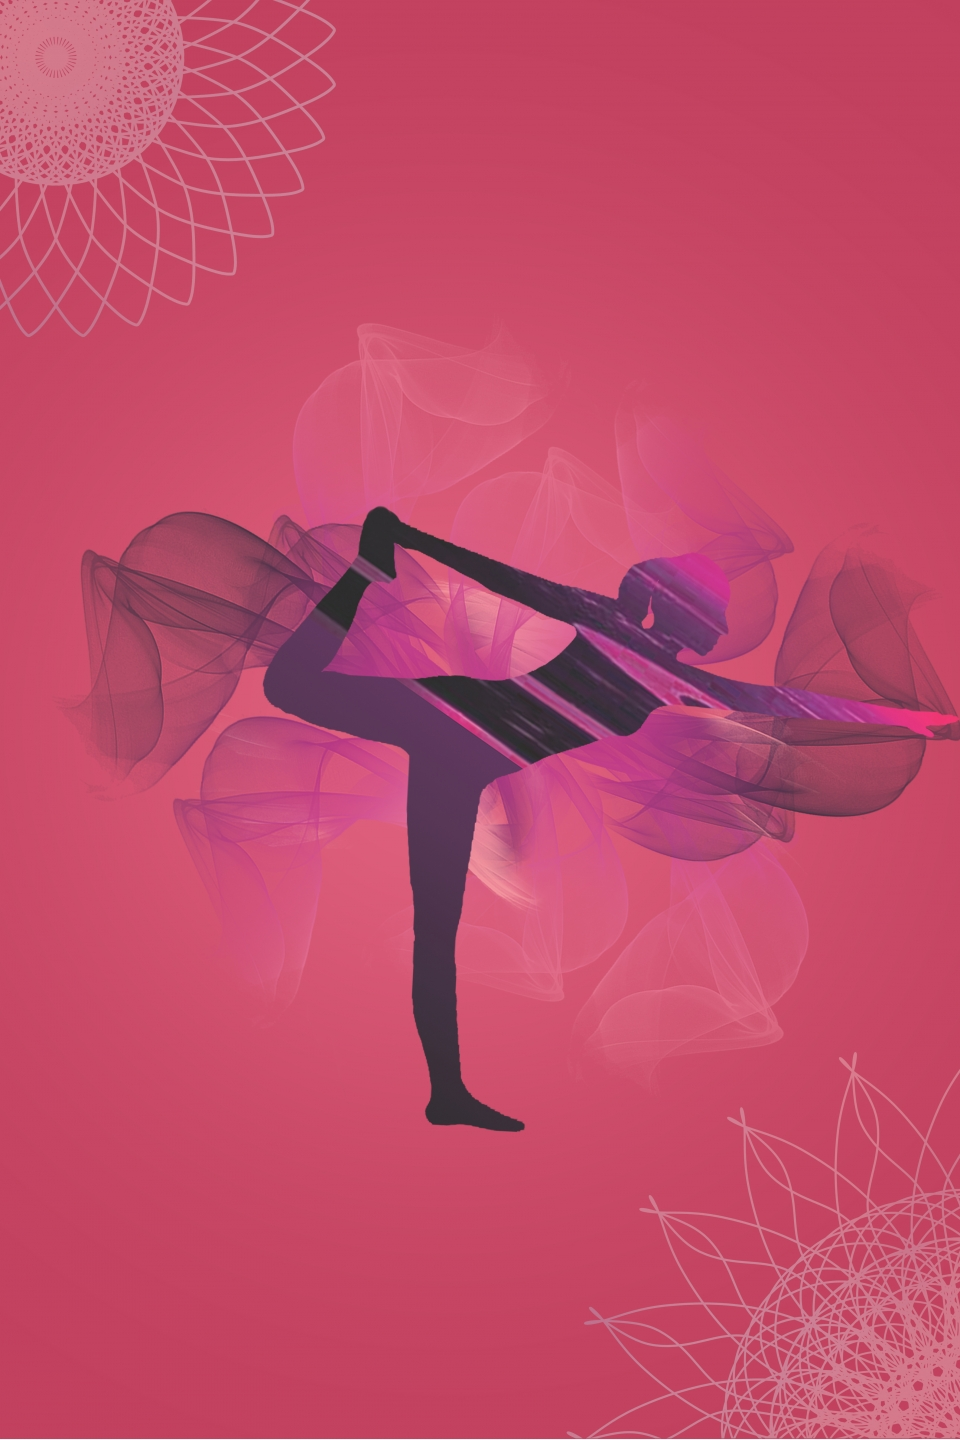 Vector Hand Drawn Fantasy Female Yoga Background Female Female Yoga Hand Drawn Background Image For Free Download